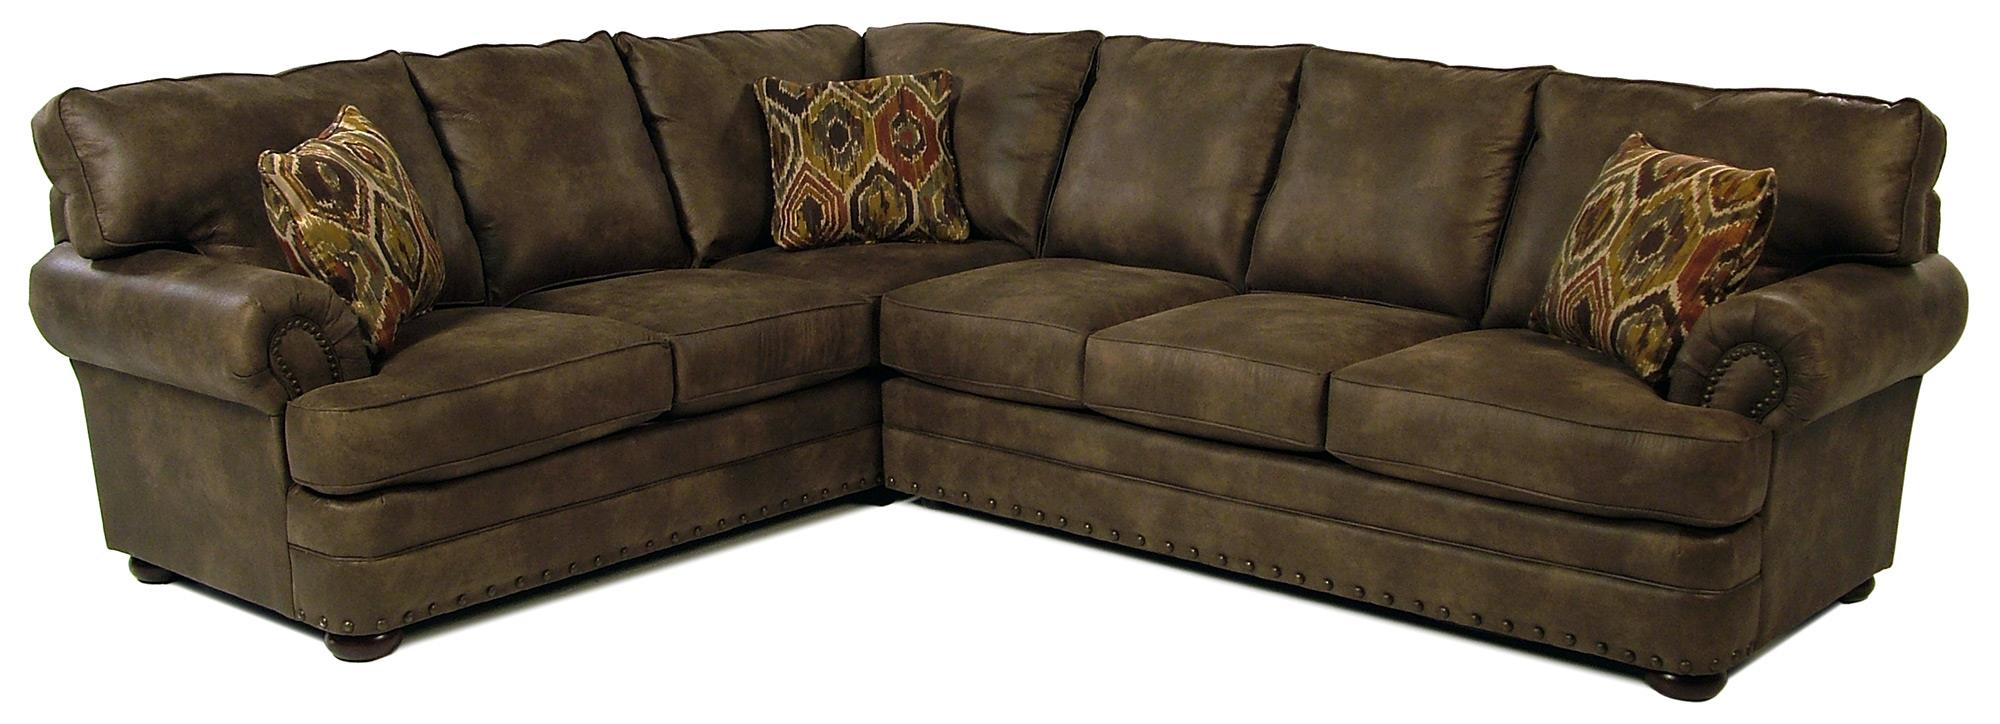 Simple Elegance San Padre Traditional 2-Piece Sectional - Item Number: K30200R+K30200L-CRNS